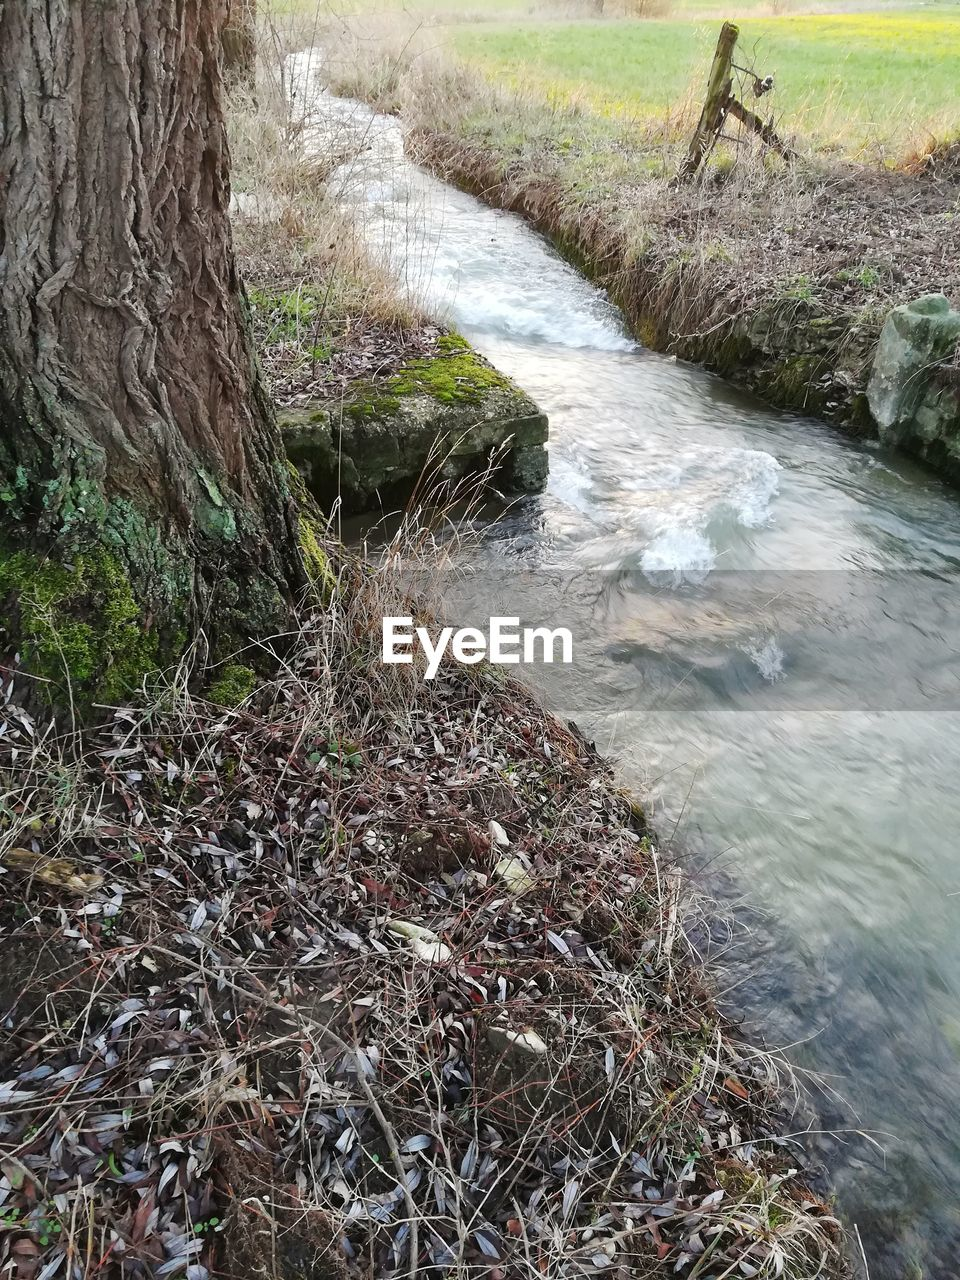 plant, water, nature, land, tree, beauty in nature, tranquility, no people, day, forest, flowing water, scenics - nature, river, growth, grass, flowing, tranquil scene, outdoors, stream - flowing water